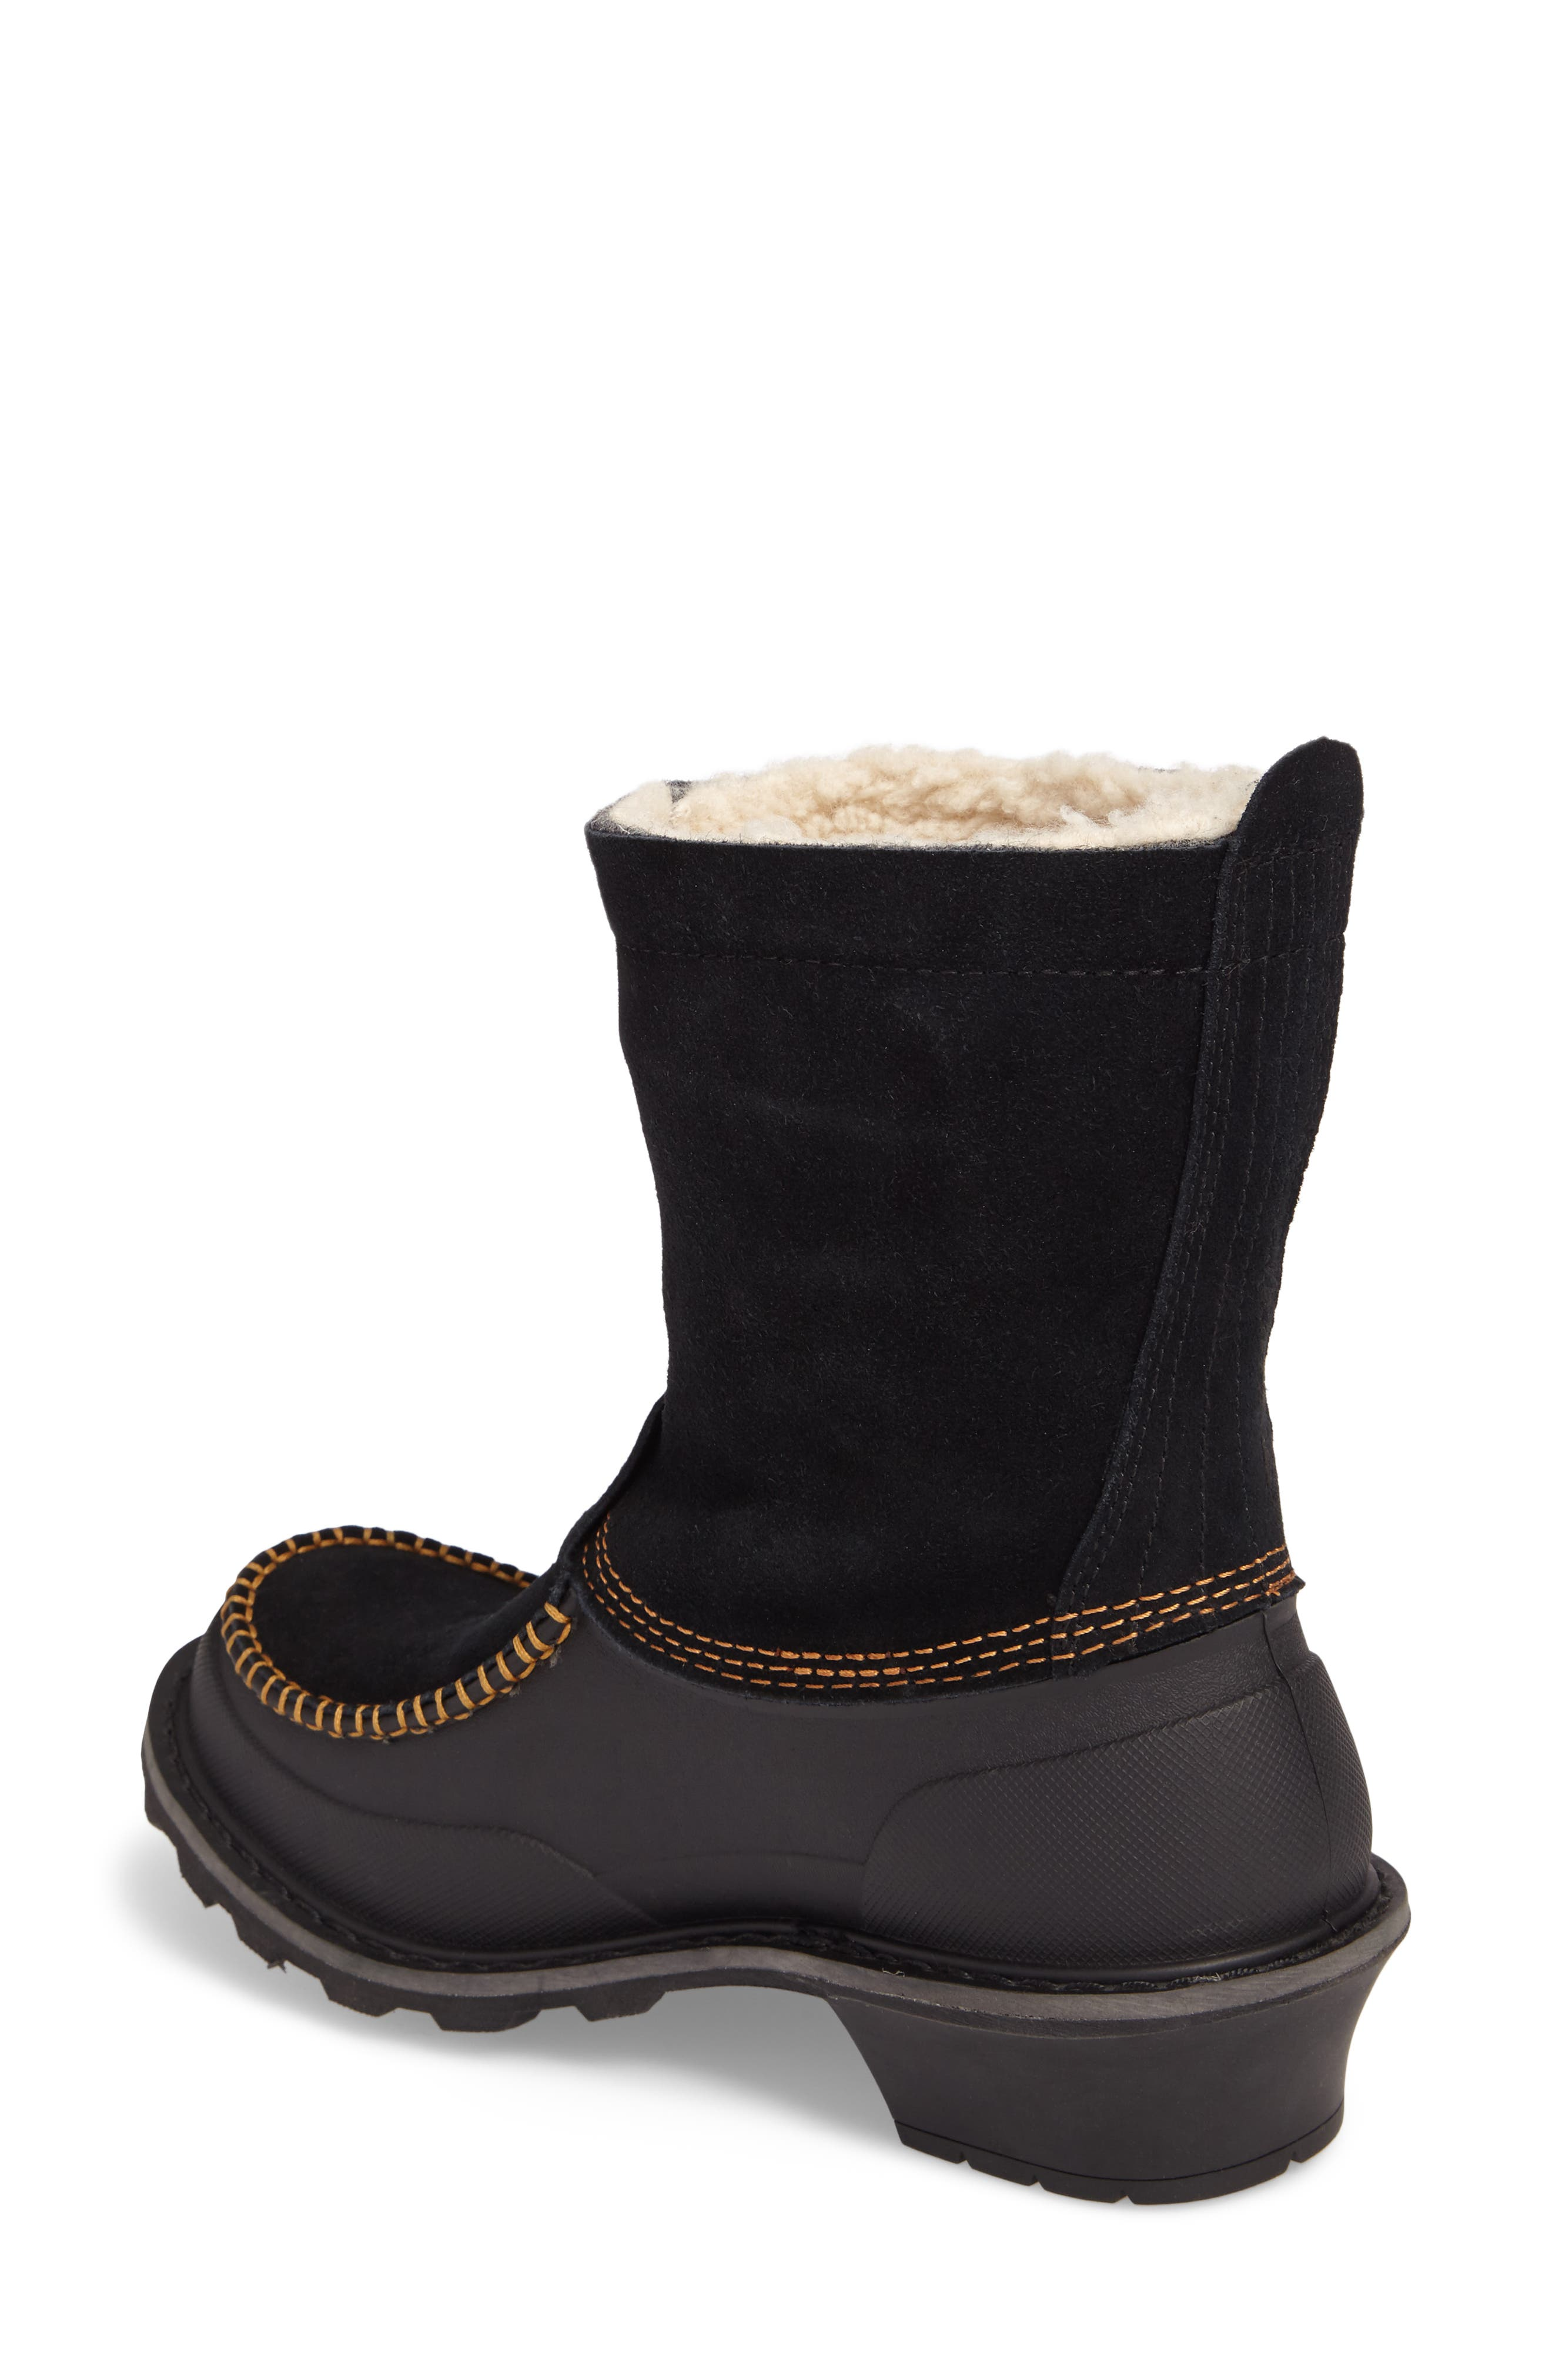 Fully Wooly Waterproof Winter Boot,                             Alternate thumbnail 2, color,                             Black Leather